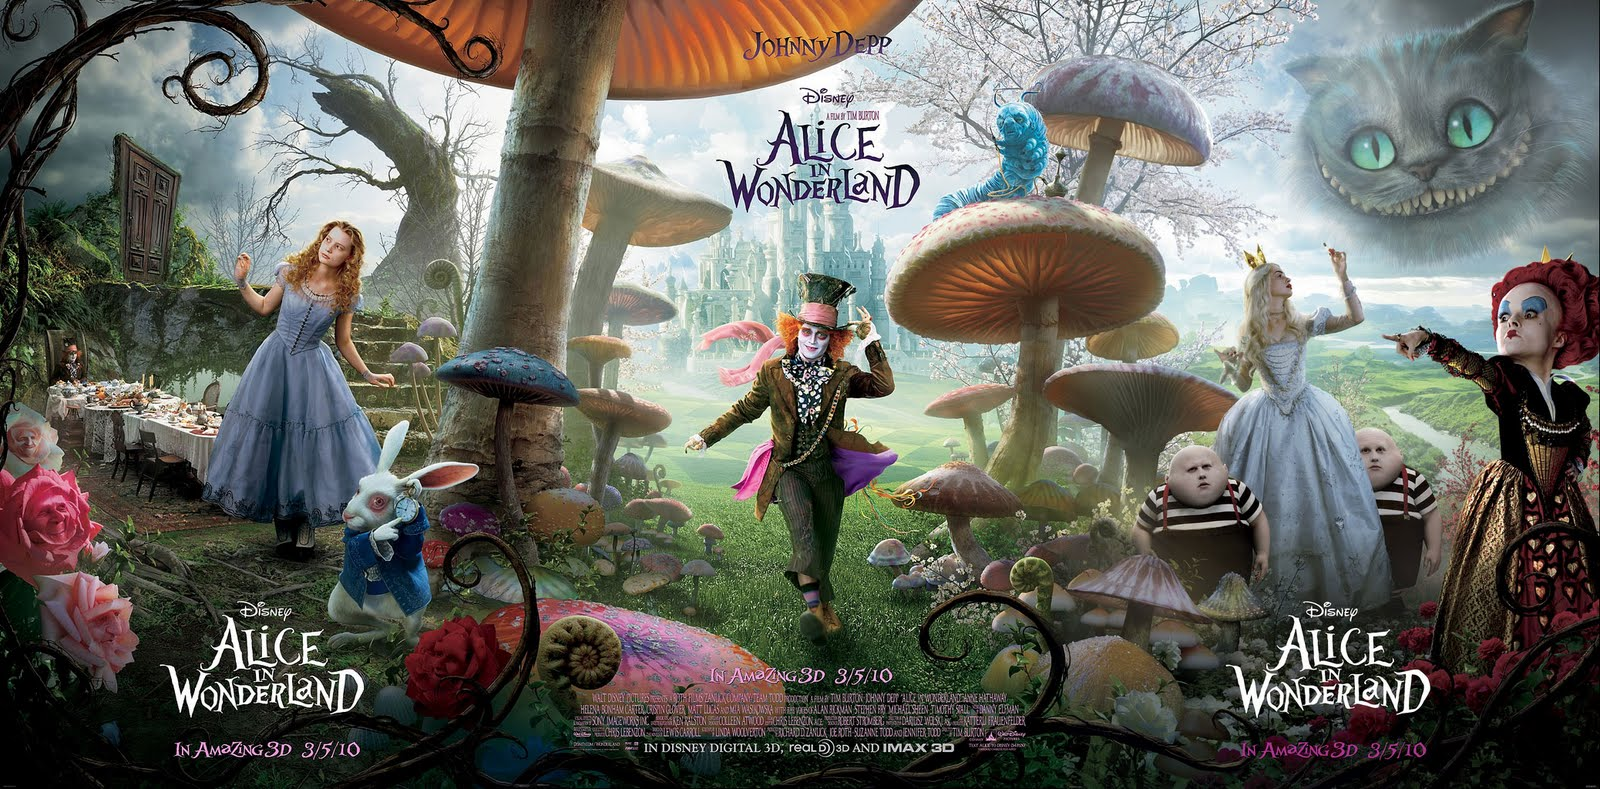 alice in wonderland movie poster wallpapers - Alice in Wonderland on Pinterest Movie Posters Tim